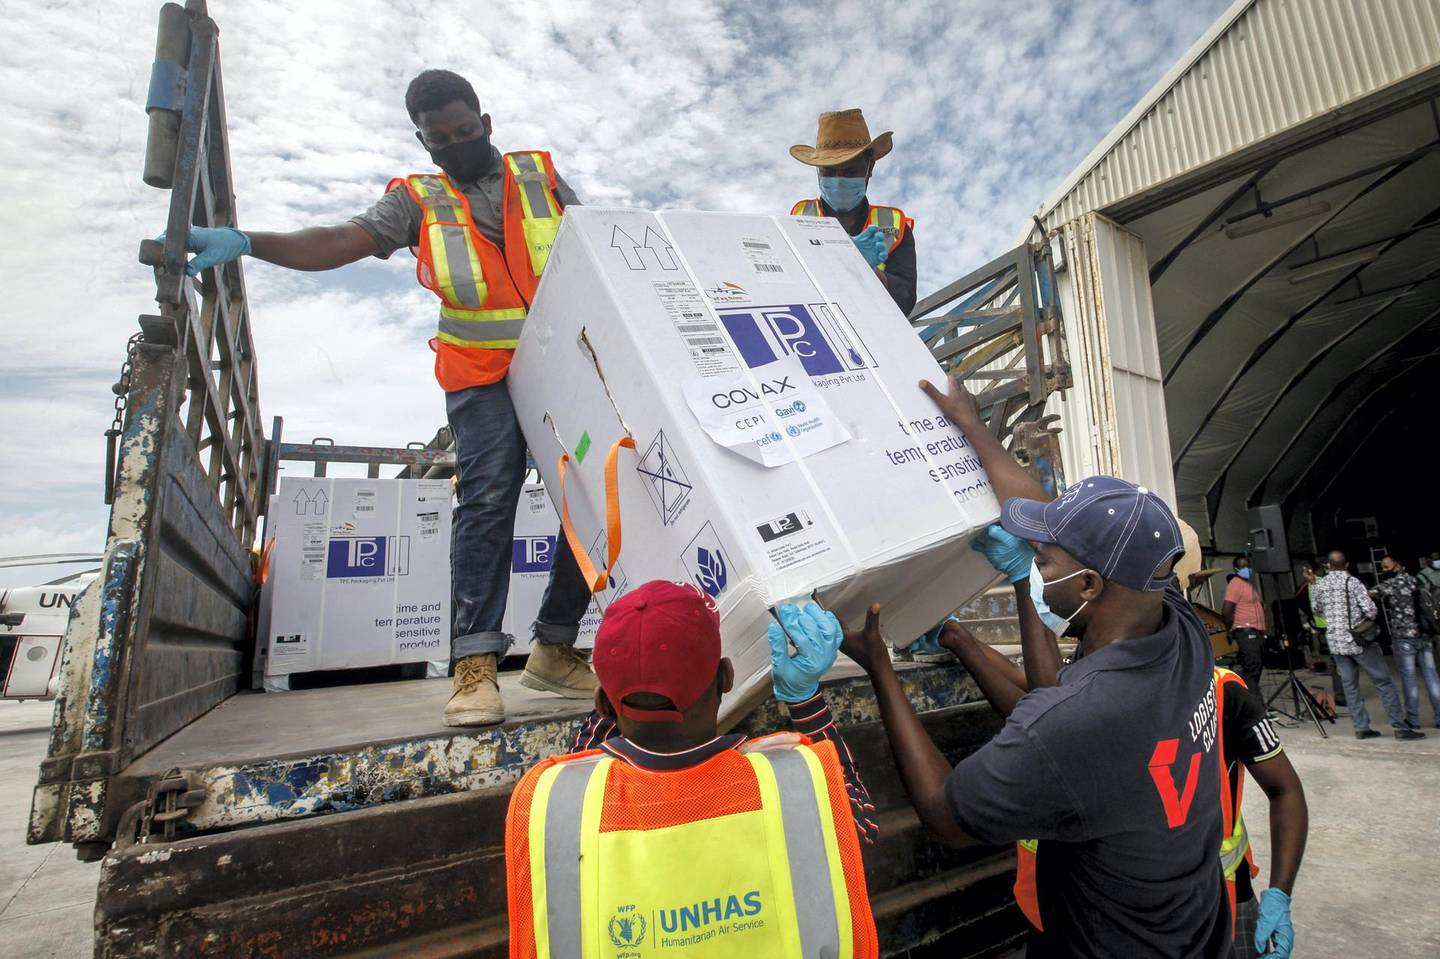 """FILE — In this March 15, 2021 file photo boxes of AstraZeneca COVID-19 vaccine manufactured by the Serum Institute of India and provided through the global COVAX initiative arrive at the airport in Mogadishu, Somalia. Africa is """"watching with total disbelief"""" as India struggles with a devastating resurgence in COVID-19 cases, the continent's top public health official said Thursday, April 29, 2021, as African officials worry about delays in vaccine deliveries caused by India's crisis.  (AP Photo/Farah Abdi Warsameh/File)"""